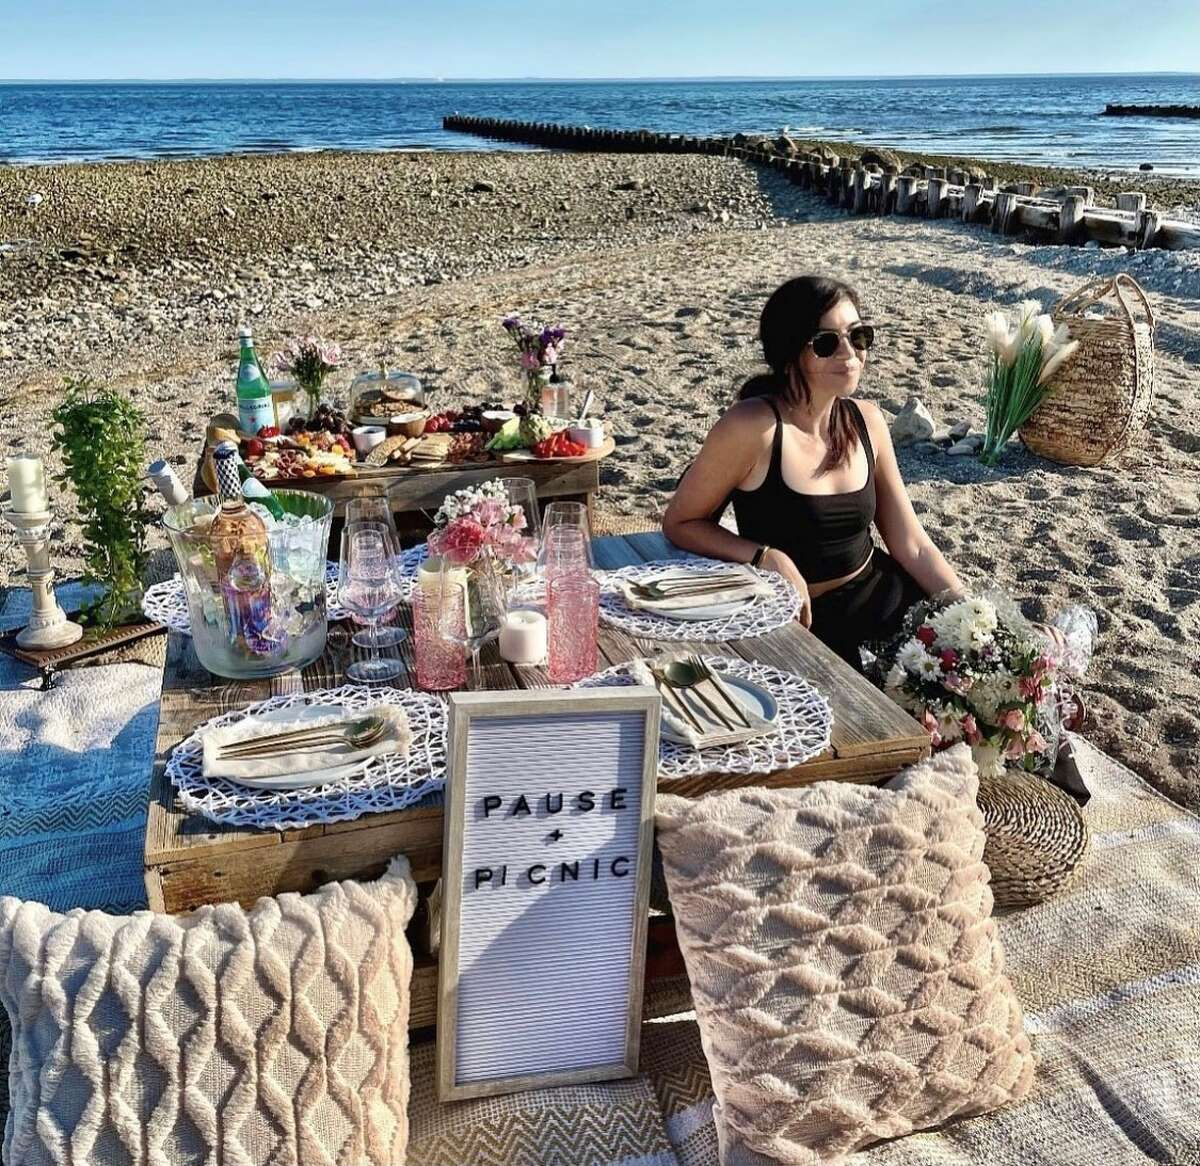 Pause and Picnic is run by mother and daughter, Donna Montelle and Nicole Pedonti.